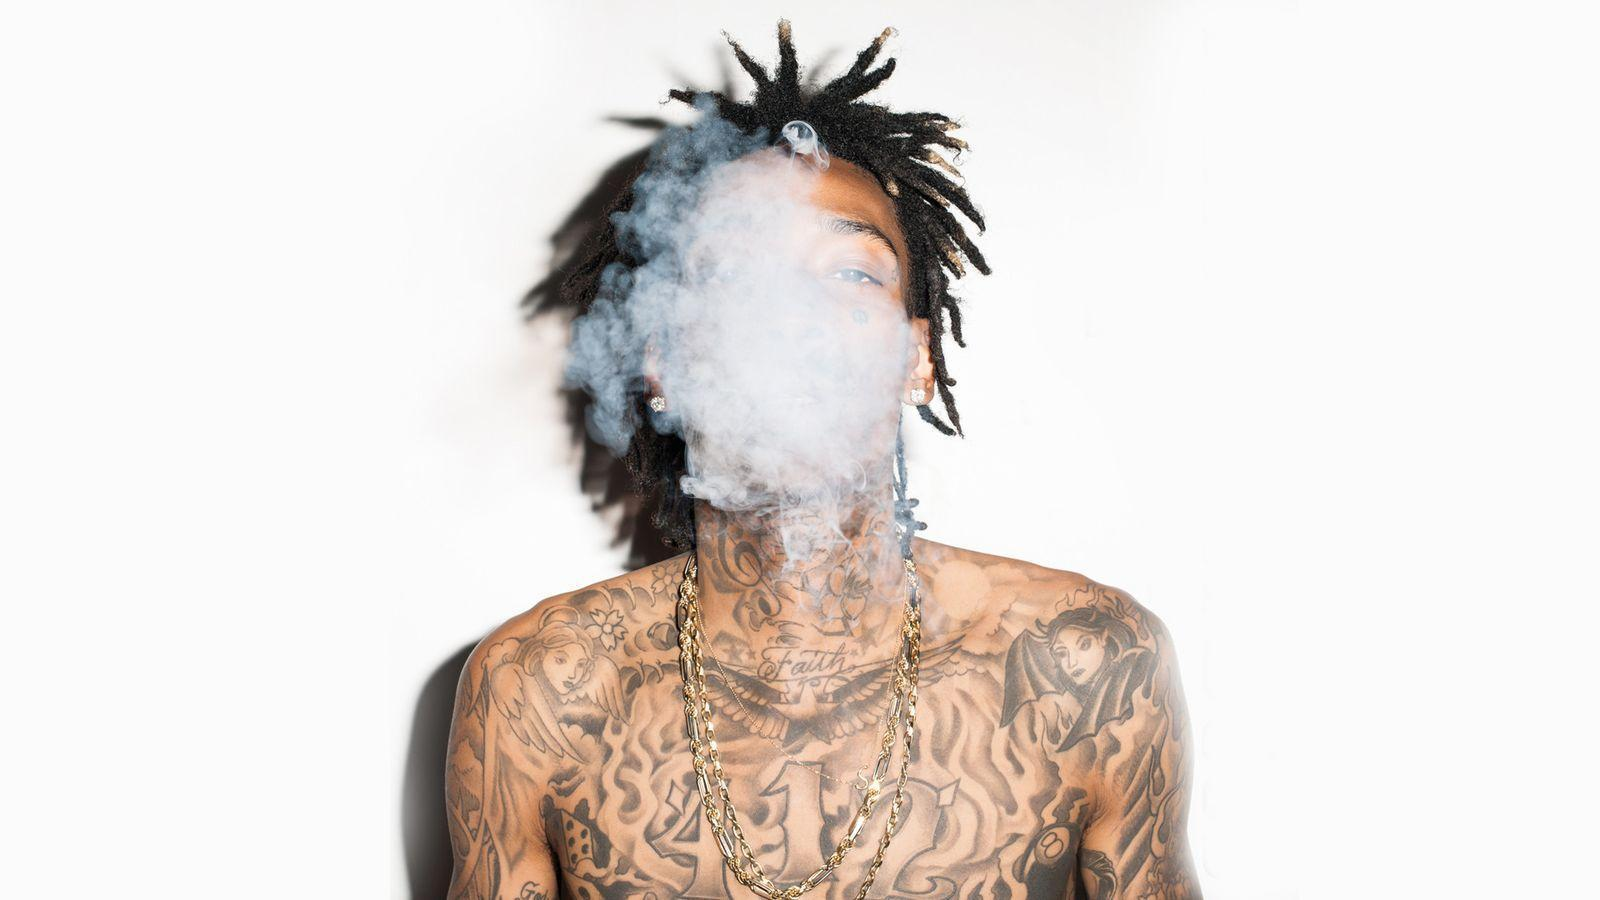 Wiz Khalifa Wallpapers HD 2016 - Wallpaper Cave